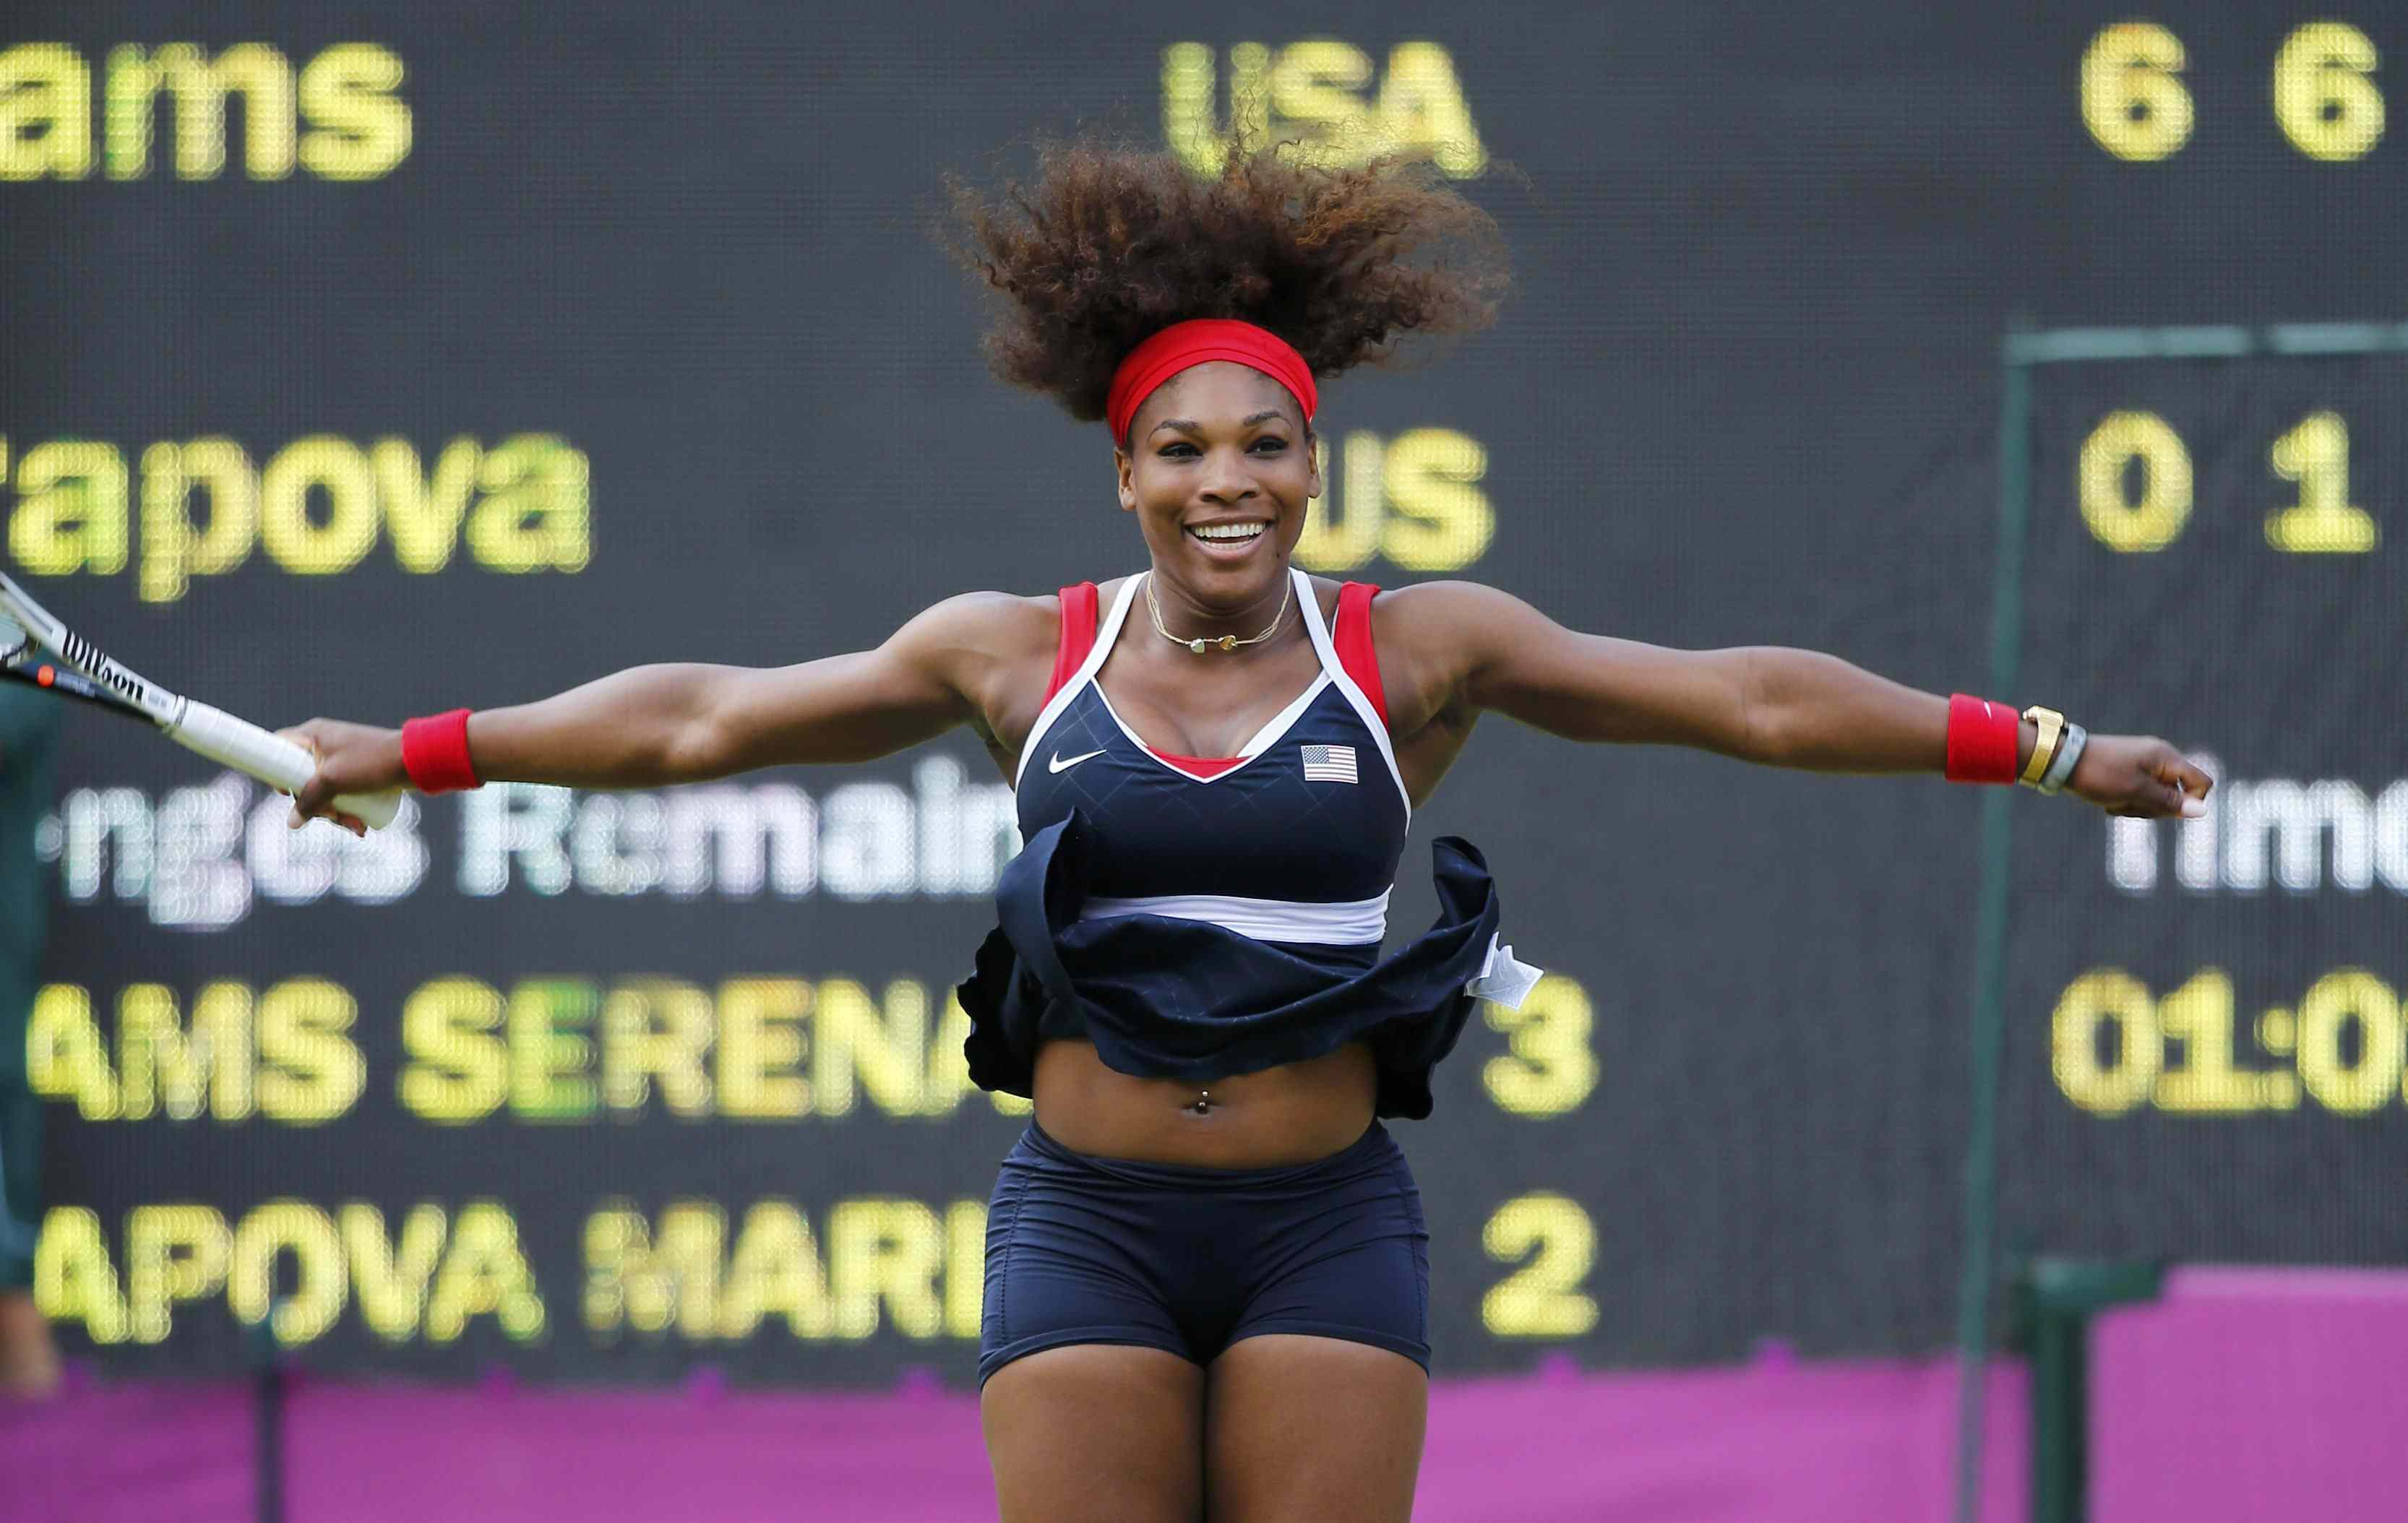 serena-williams-olympics/serena-williams-golden-slam-olympics